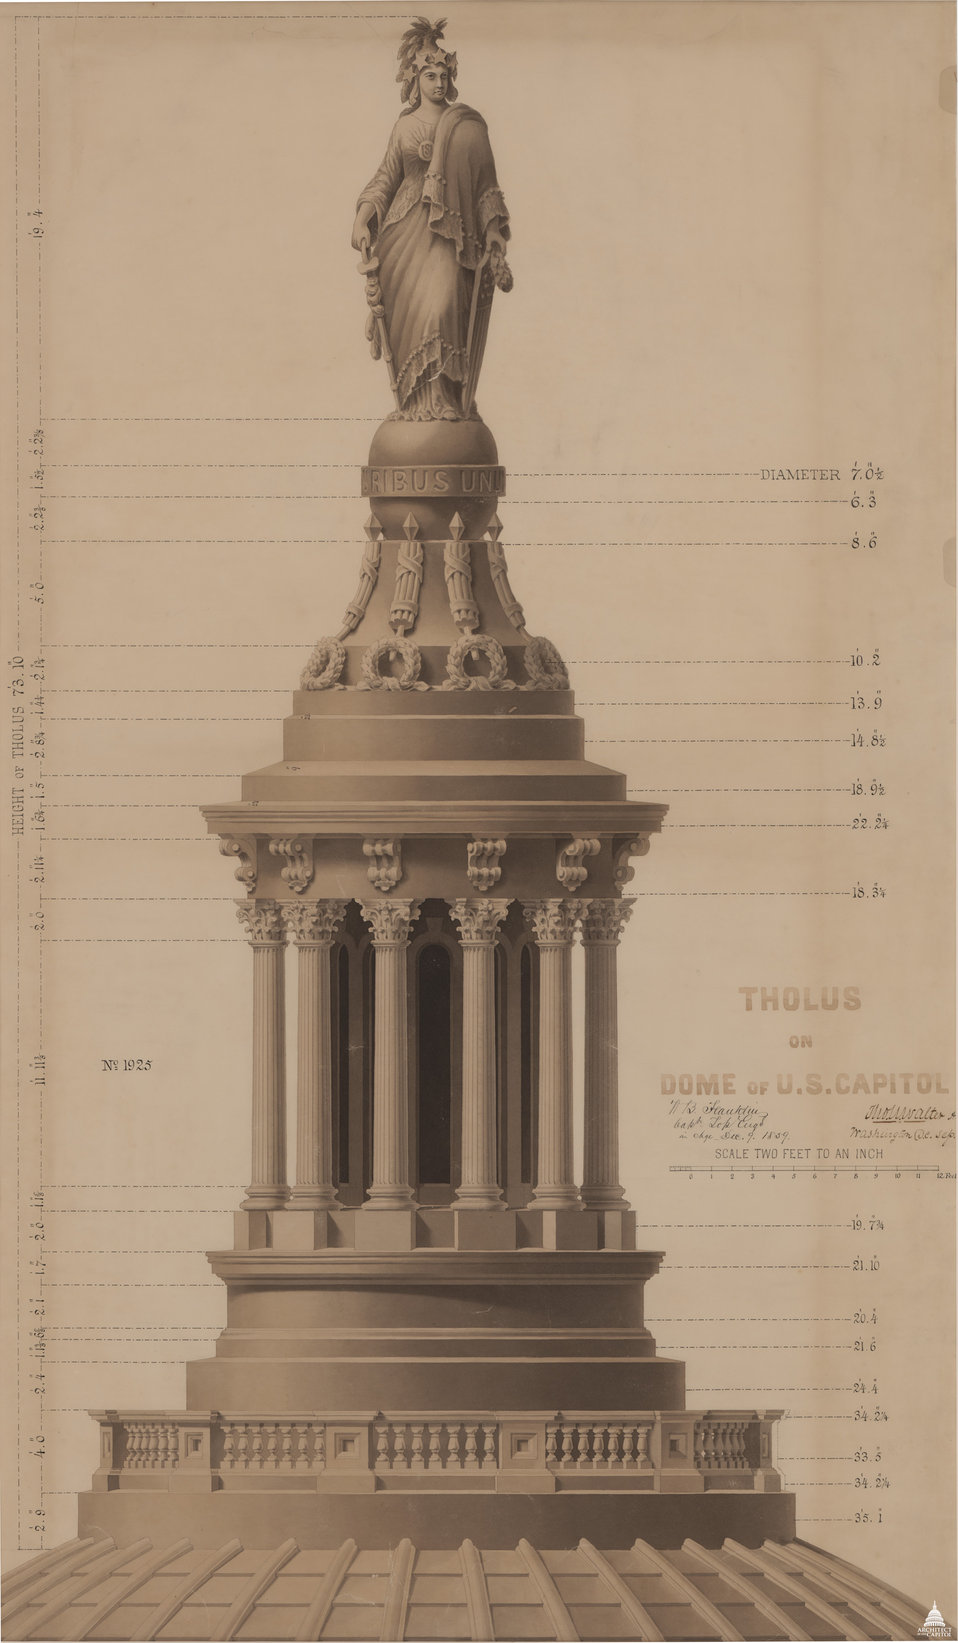 Elevation of Tholos of Capitol Dome and Statue of Freedom